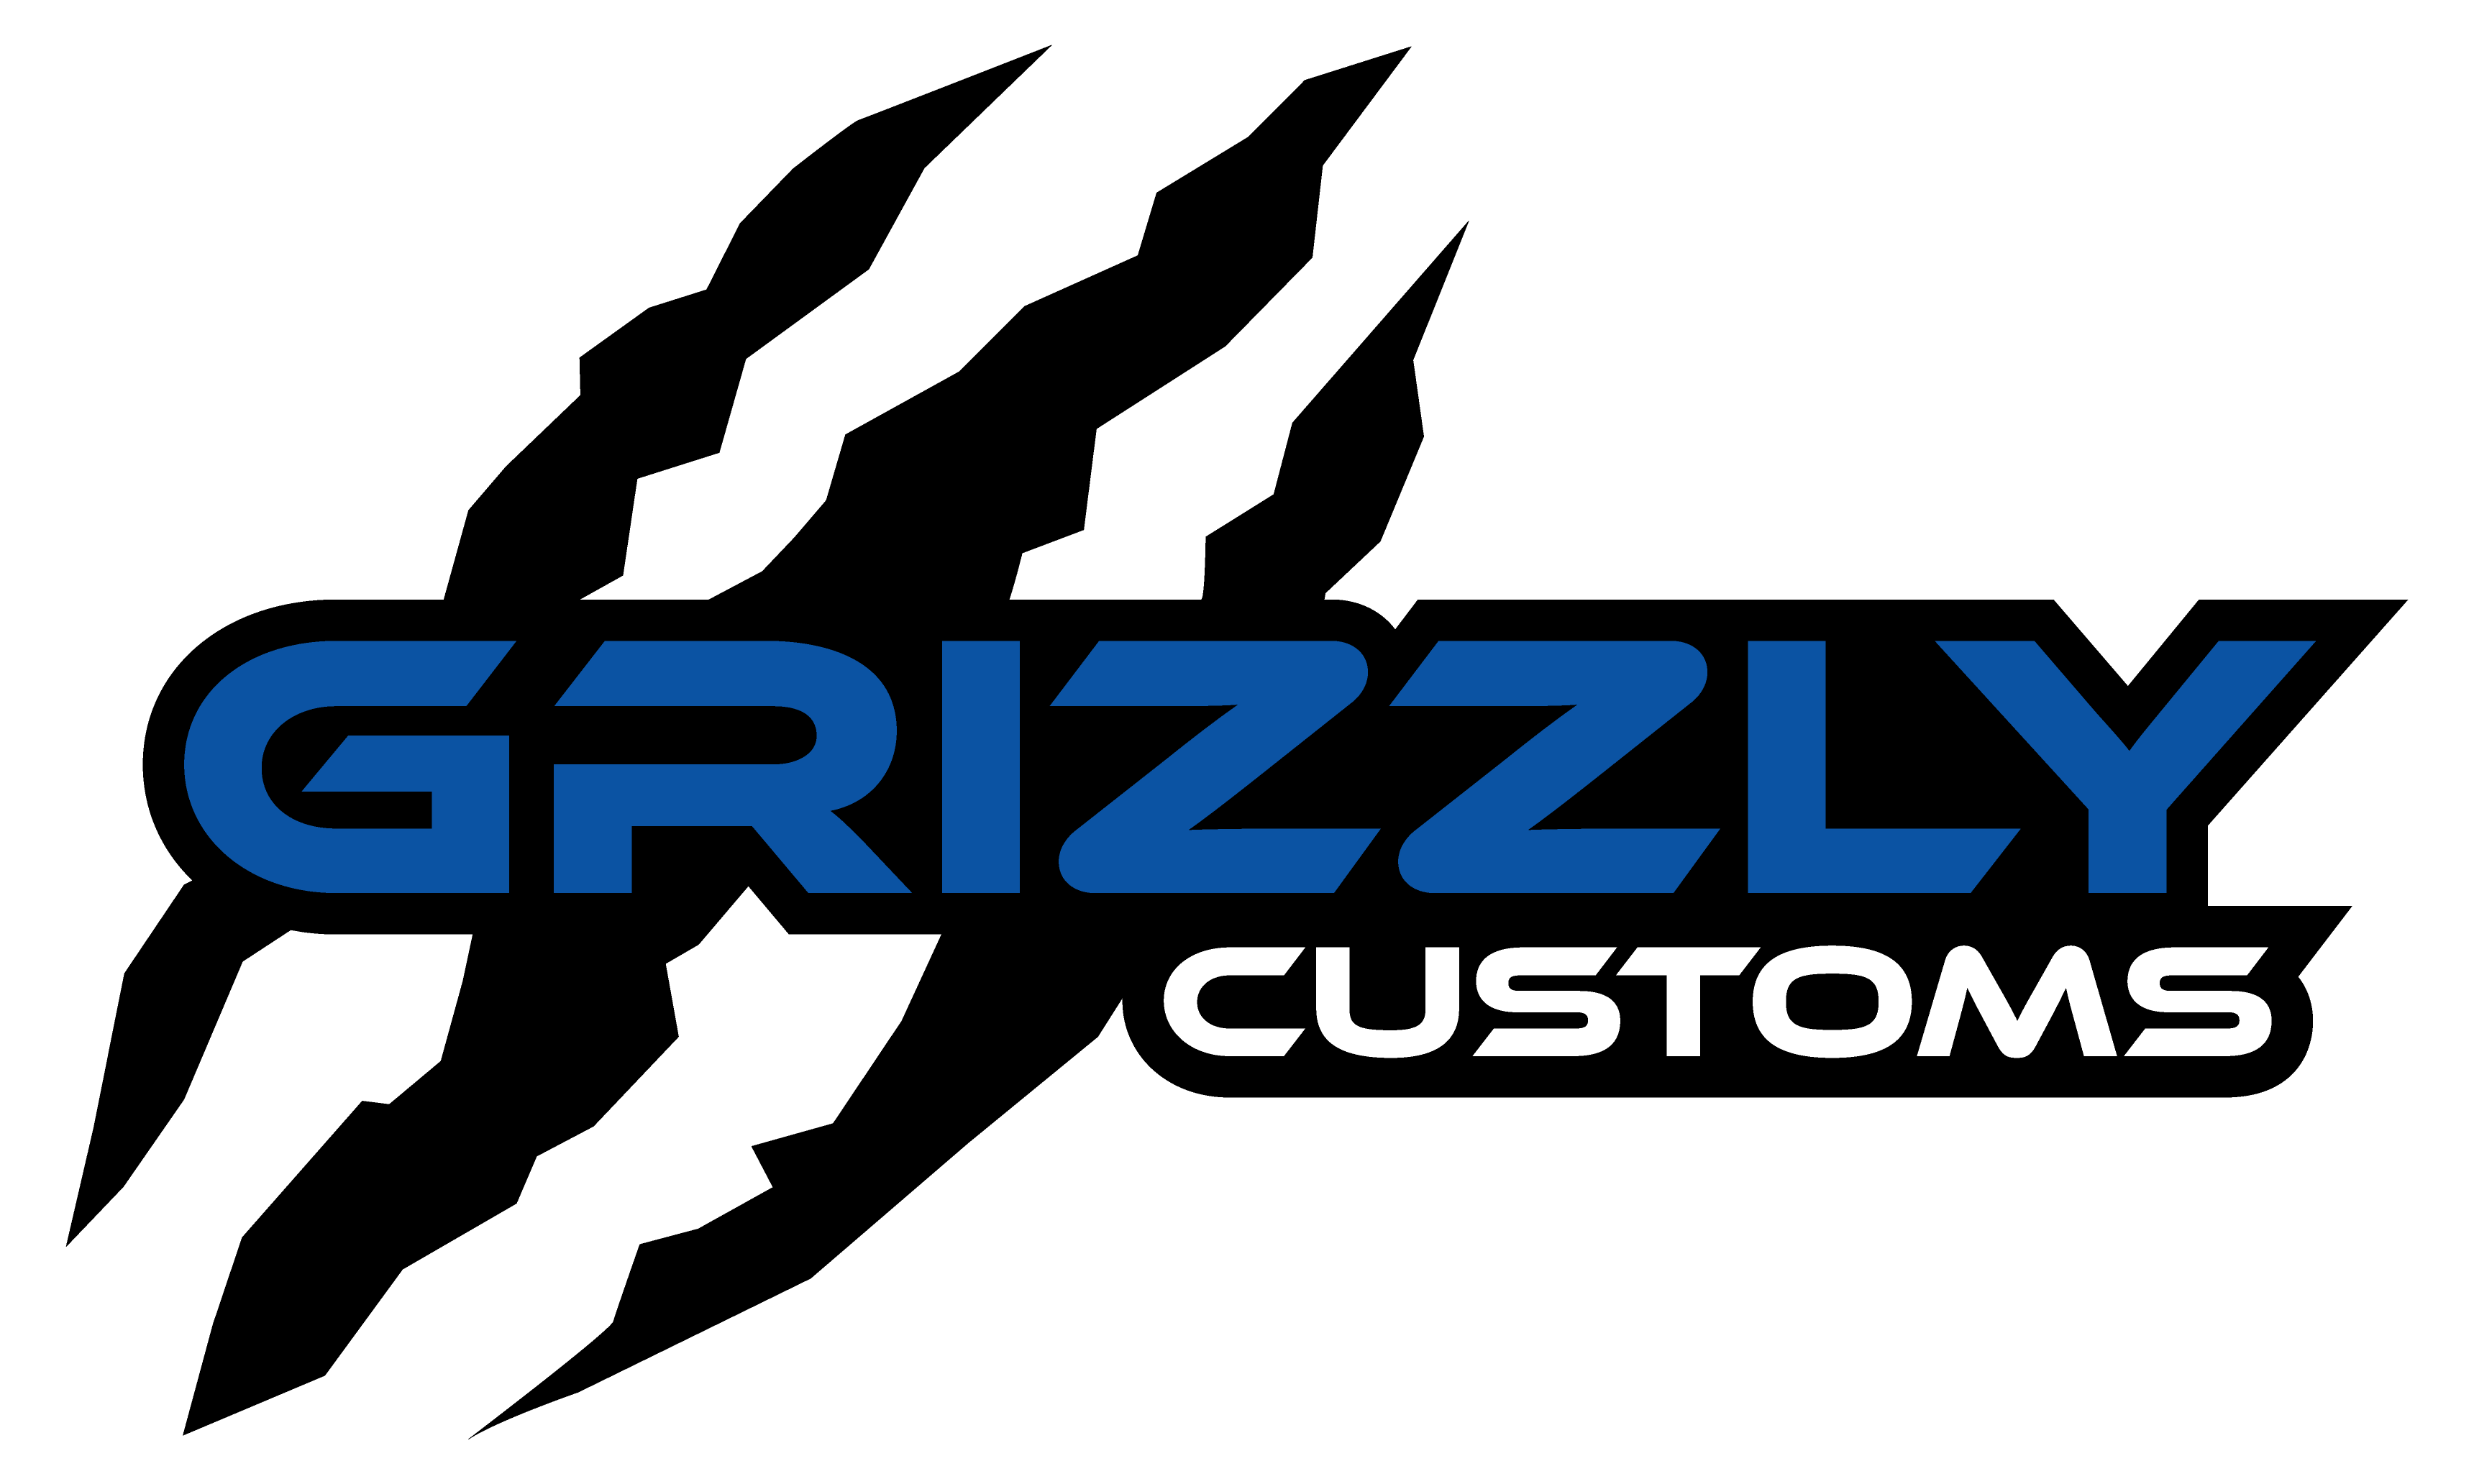 Grizzly Customs